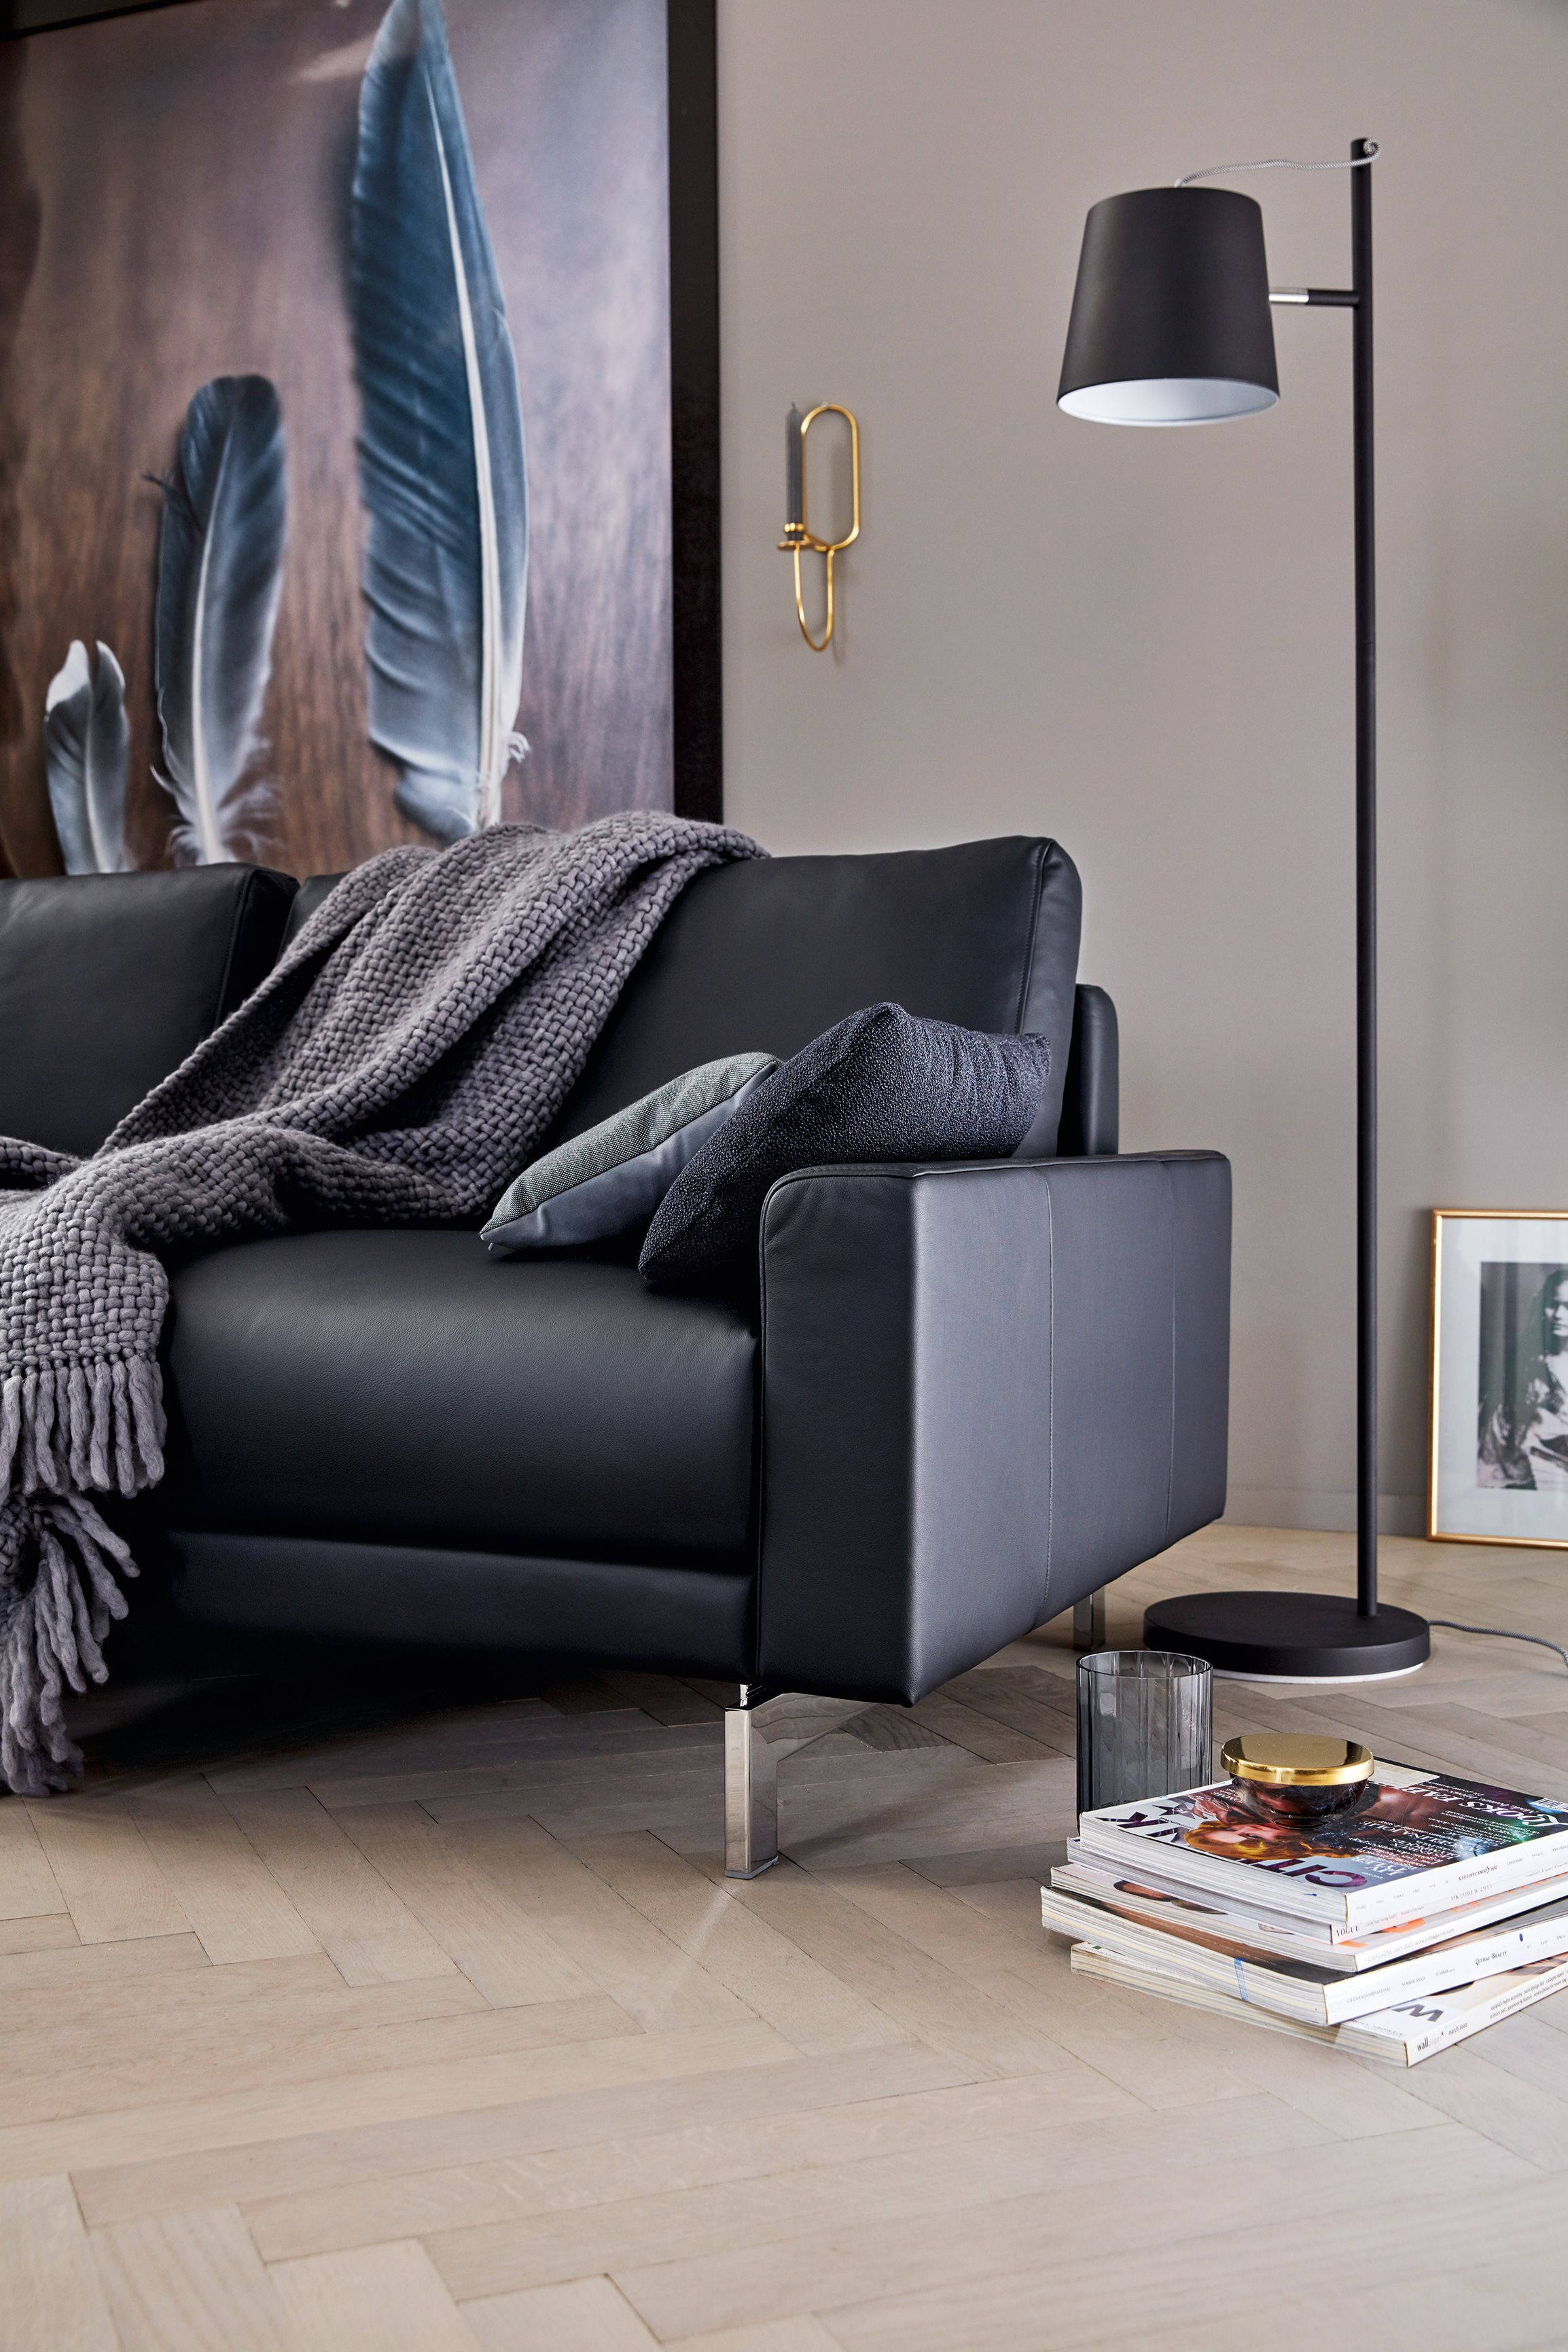 sofa dunkelblau trendy designsofa modular stoff dunkelblau sitzer modulo with sofa dunkelblau. Black Bedroom Furniture Sets. Home Design Ideas